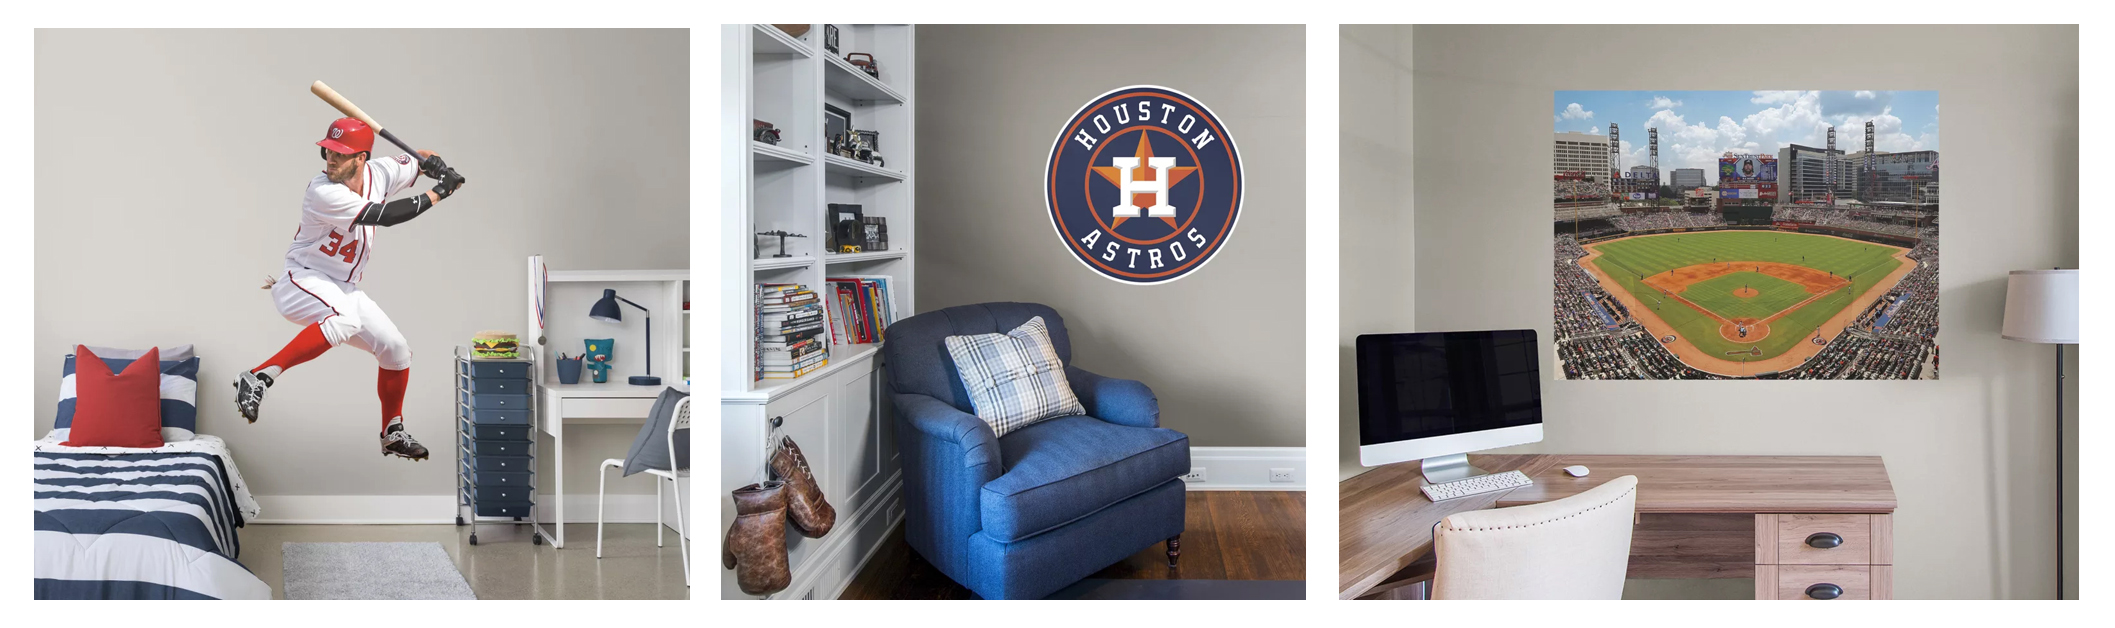 fathead wall decals banner